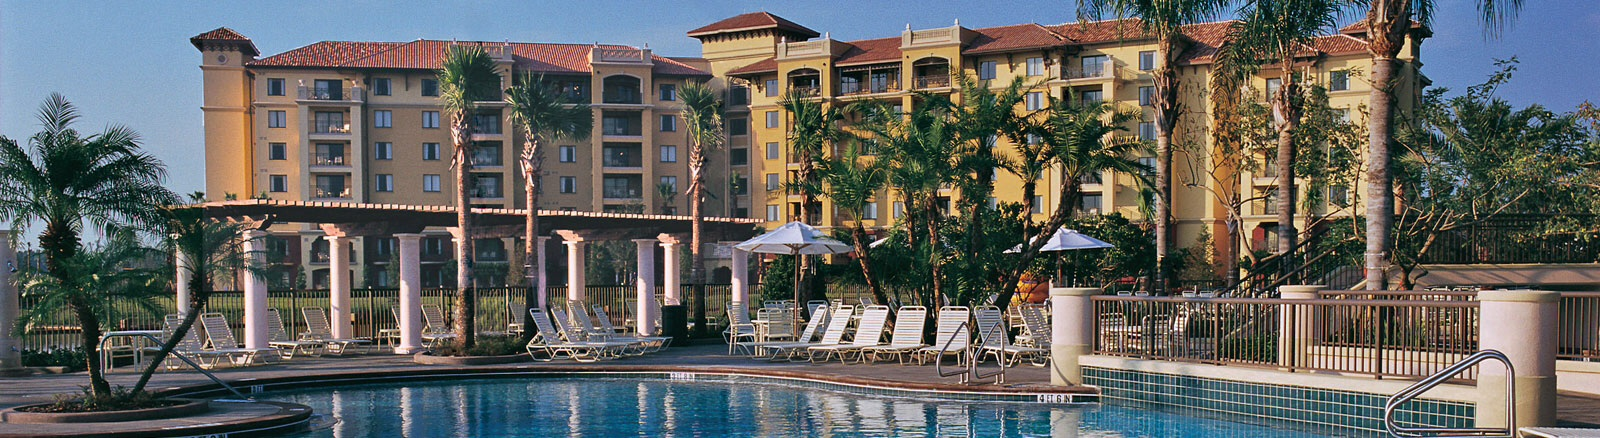 Wyndham Bonnet Creek Resort, USA